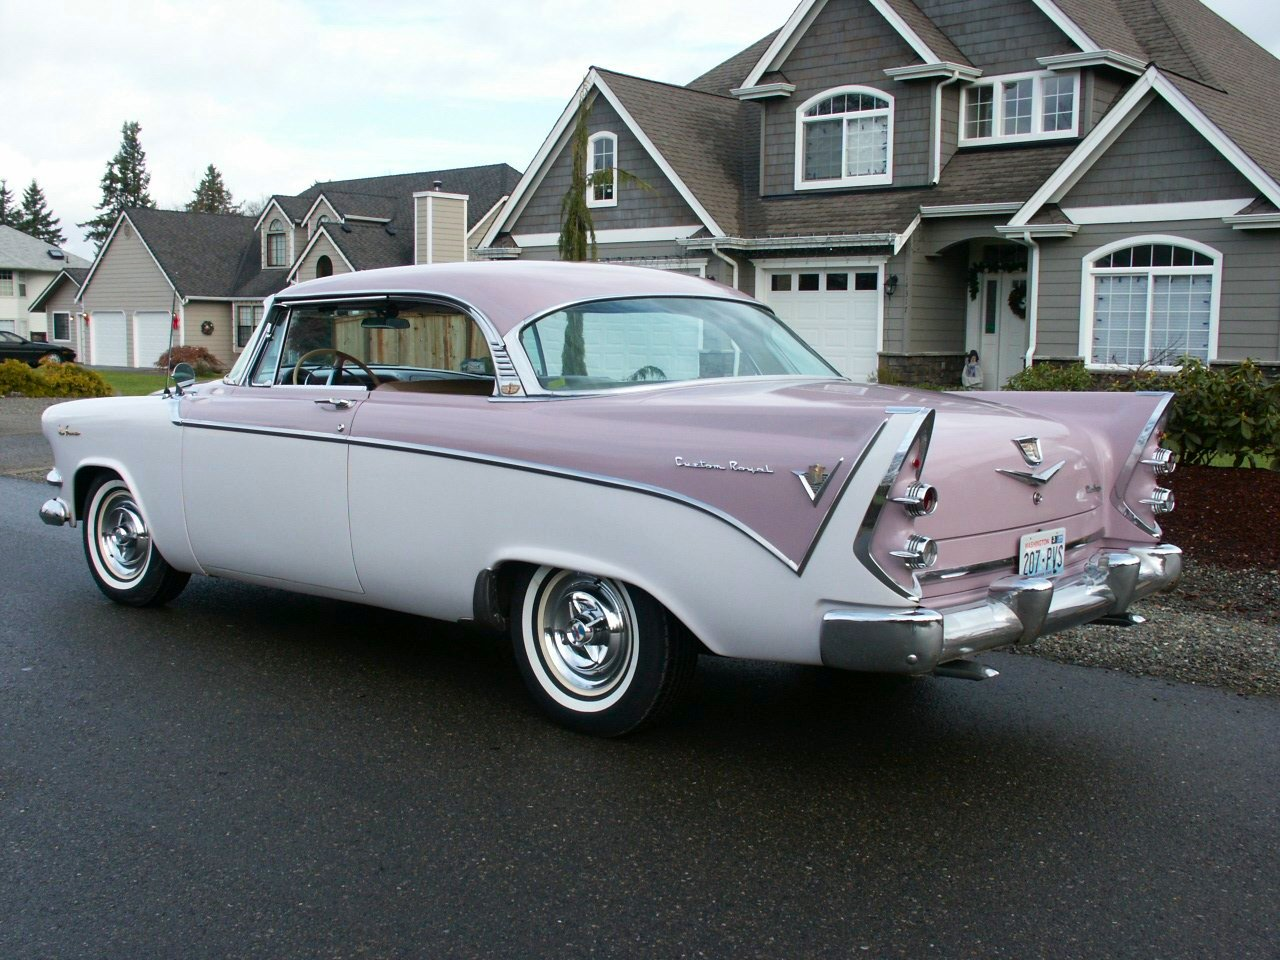 For 1956, Dodge elected to go